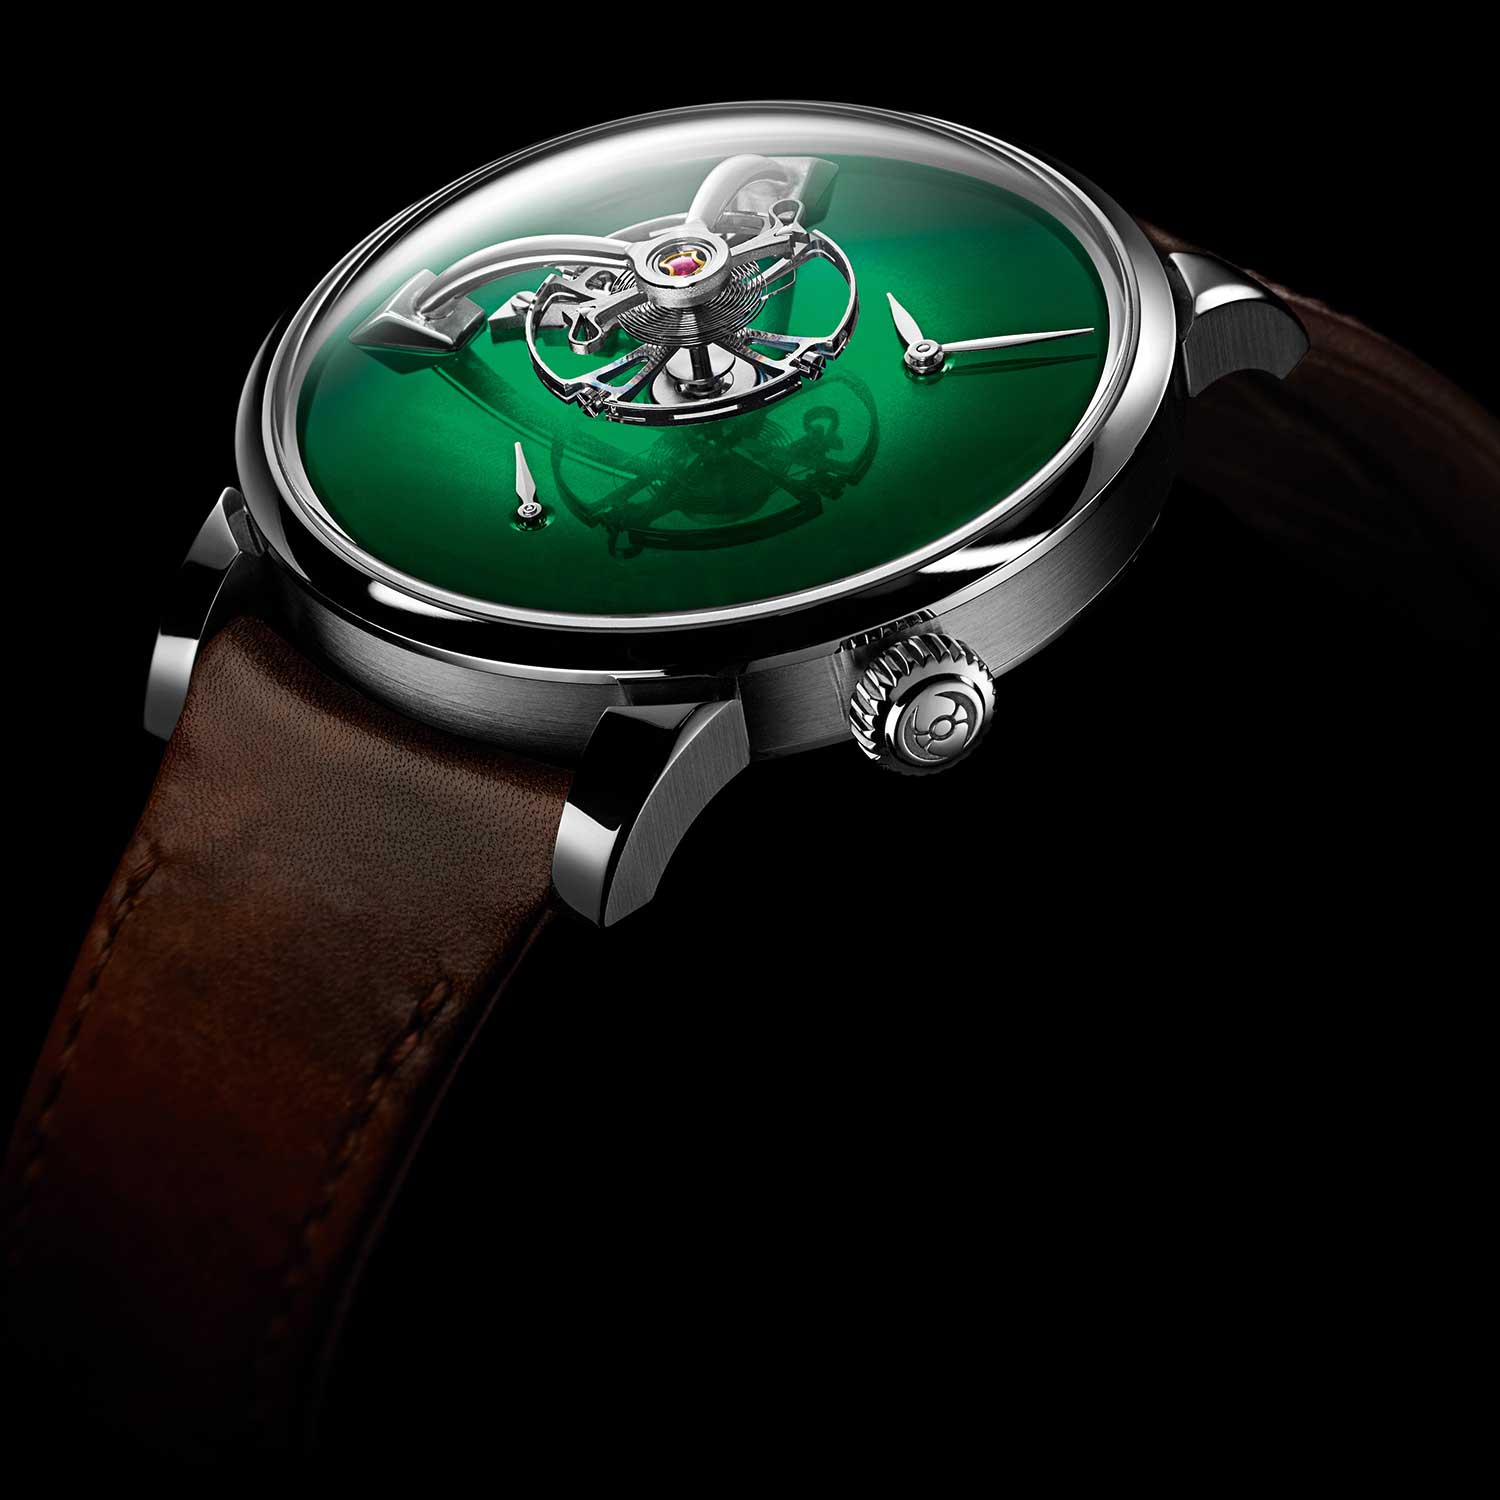 MB&F × H. Moser LM101 in Cosmic Green